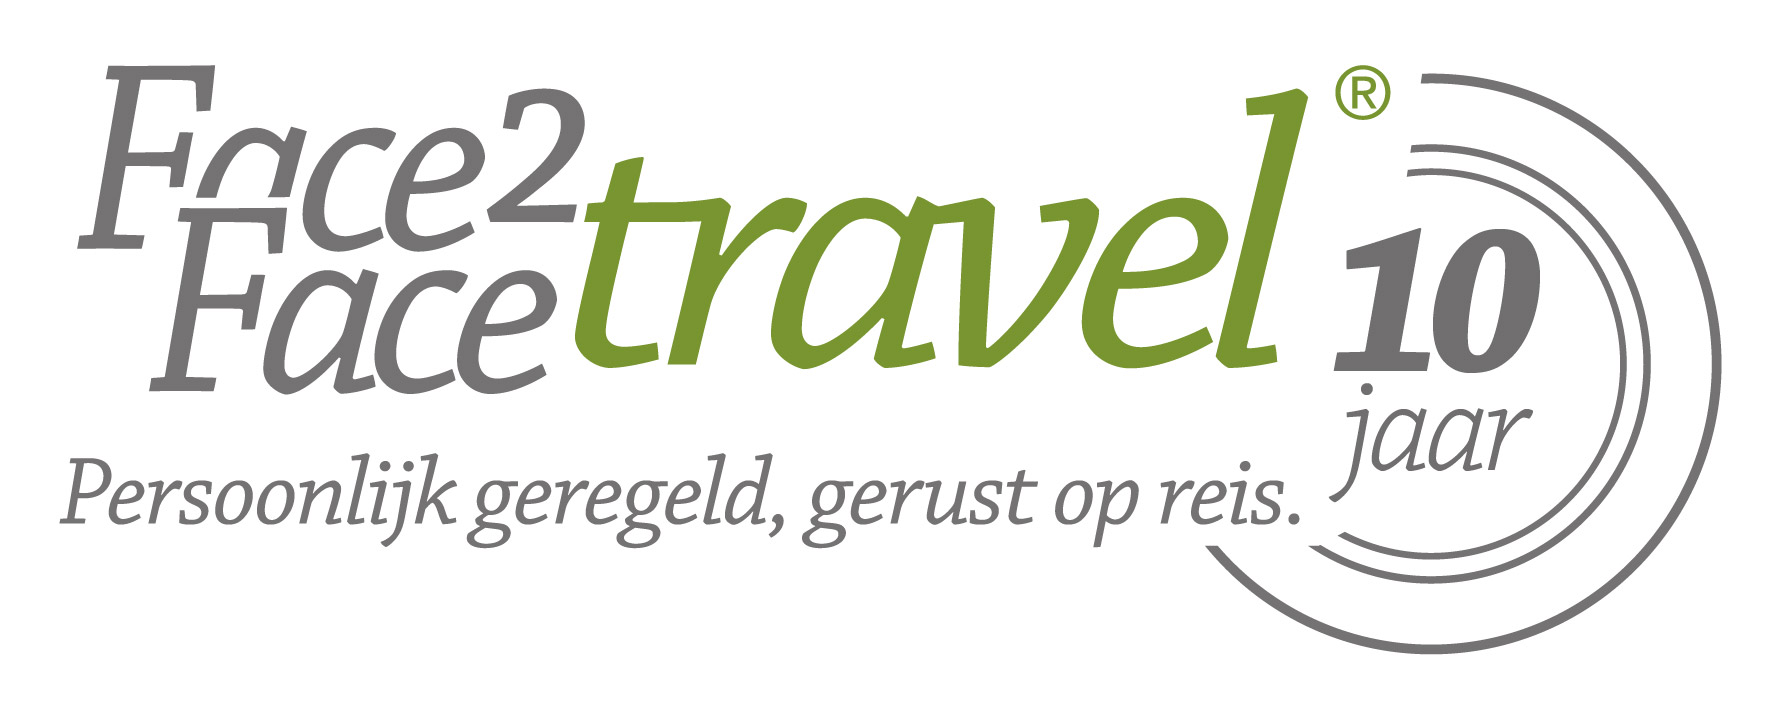 Face 2 Face Travel Zwolle